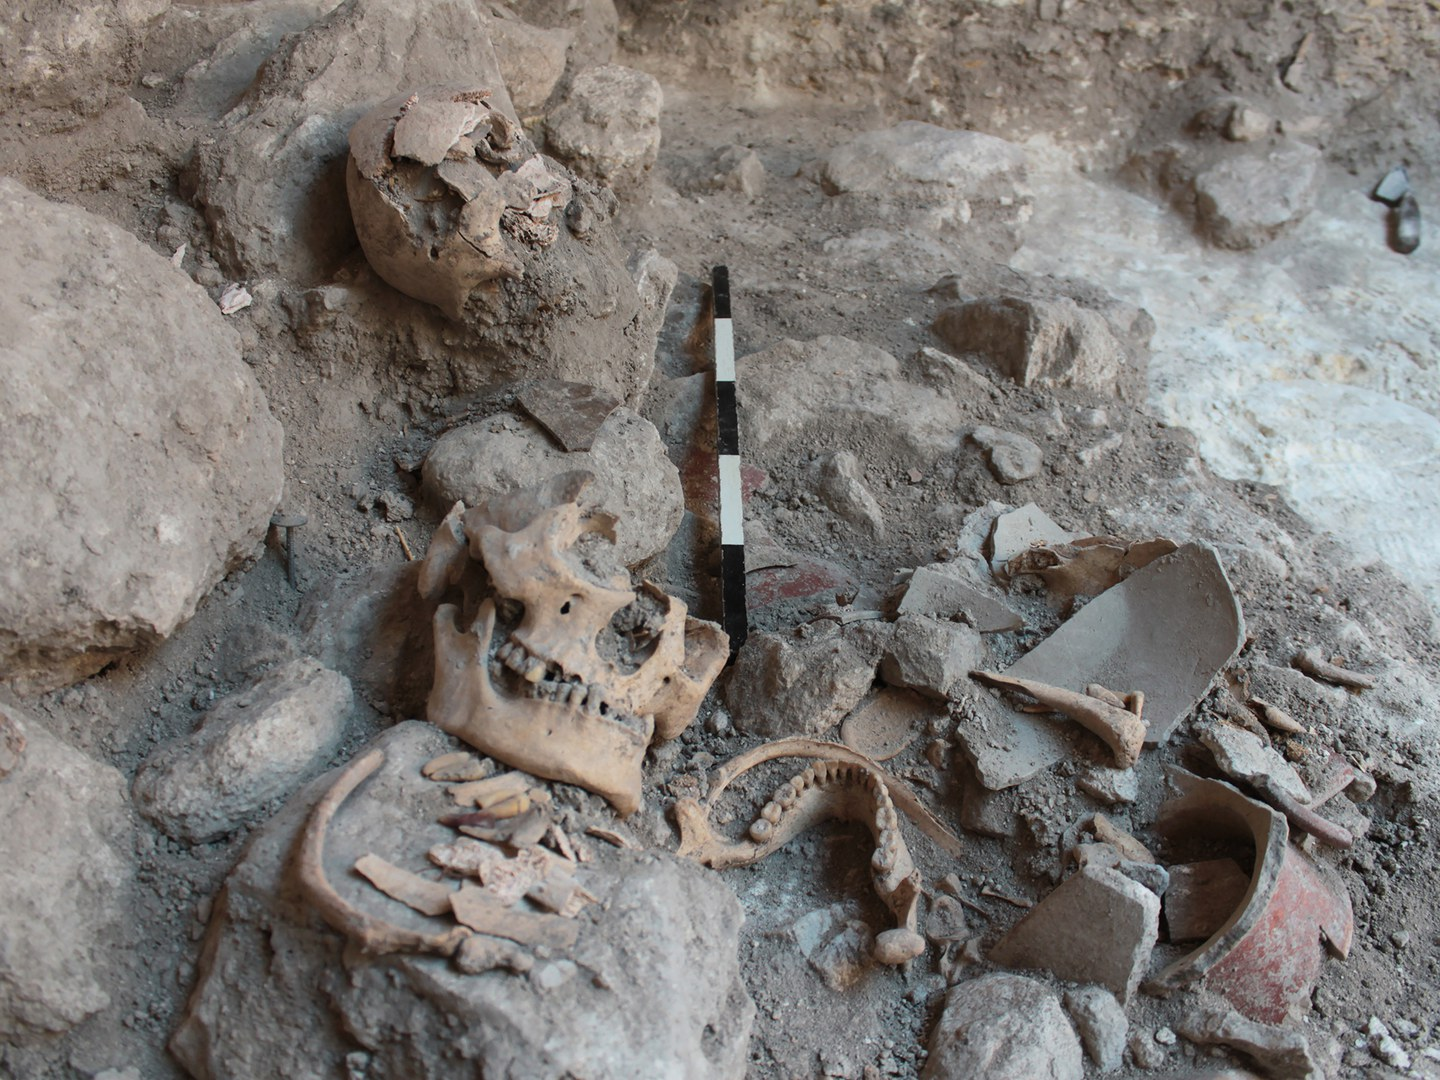 Mass grave of Uxul during the excavations in 2013: